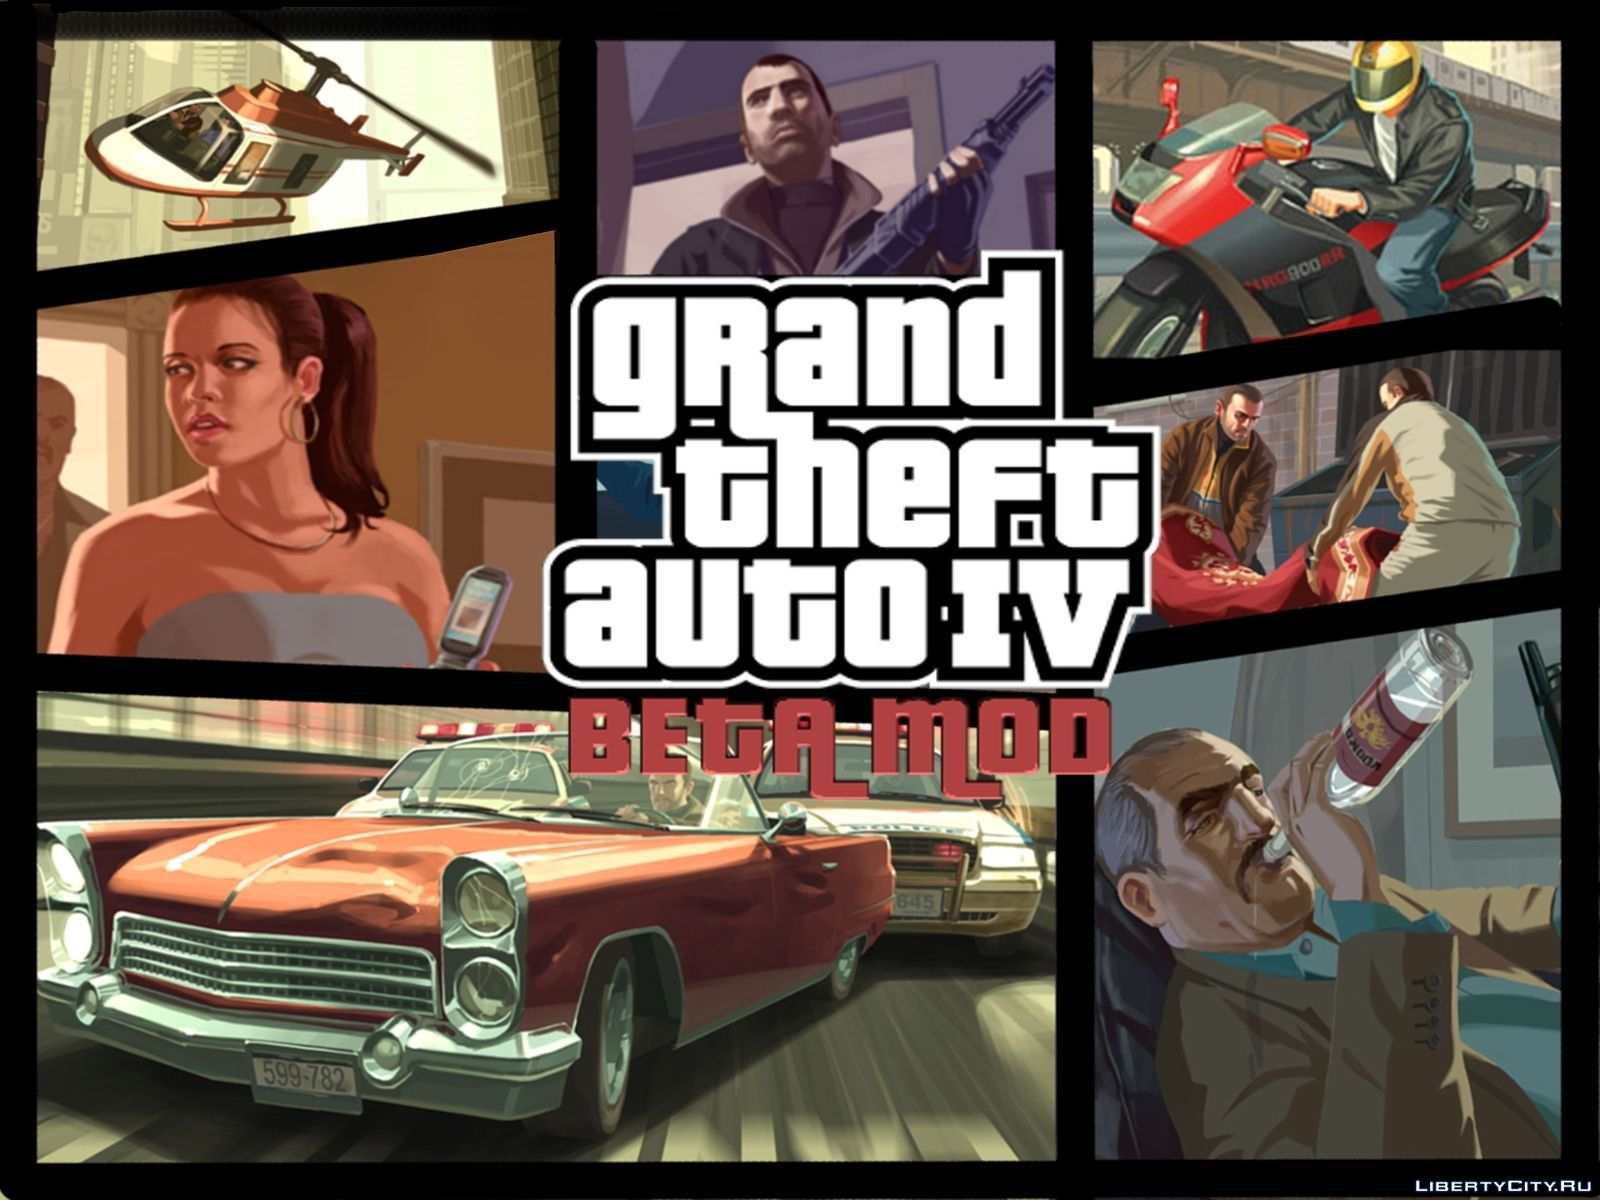 Replacement Of American.gxt In GTA 4 (13 File